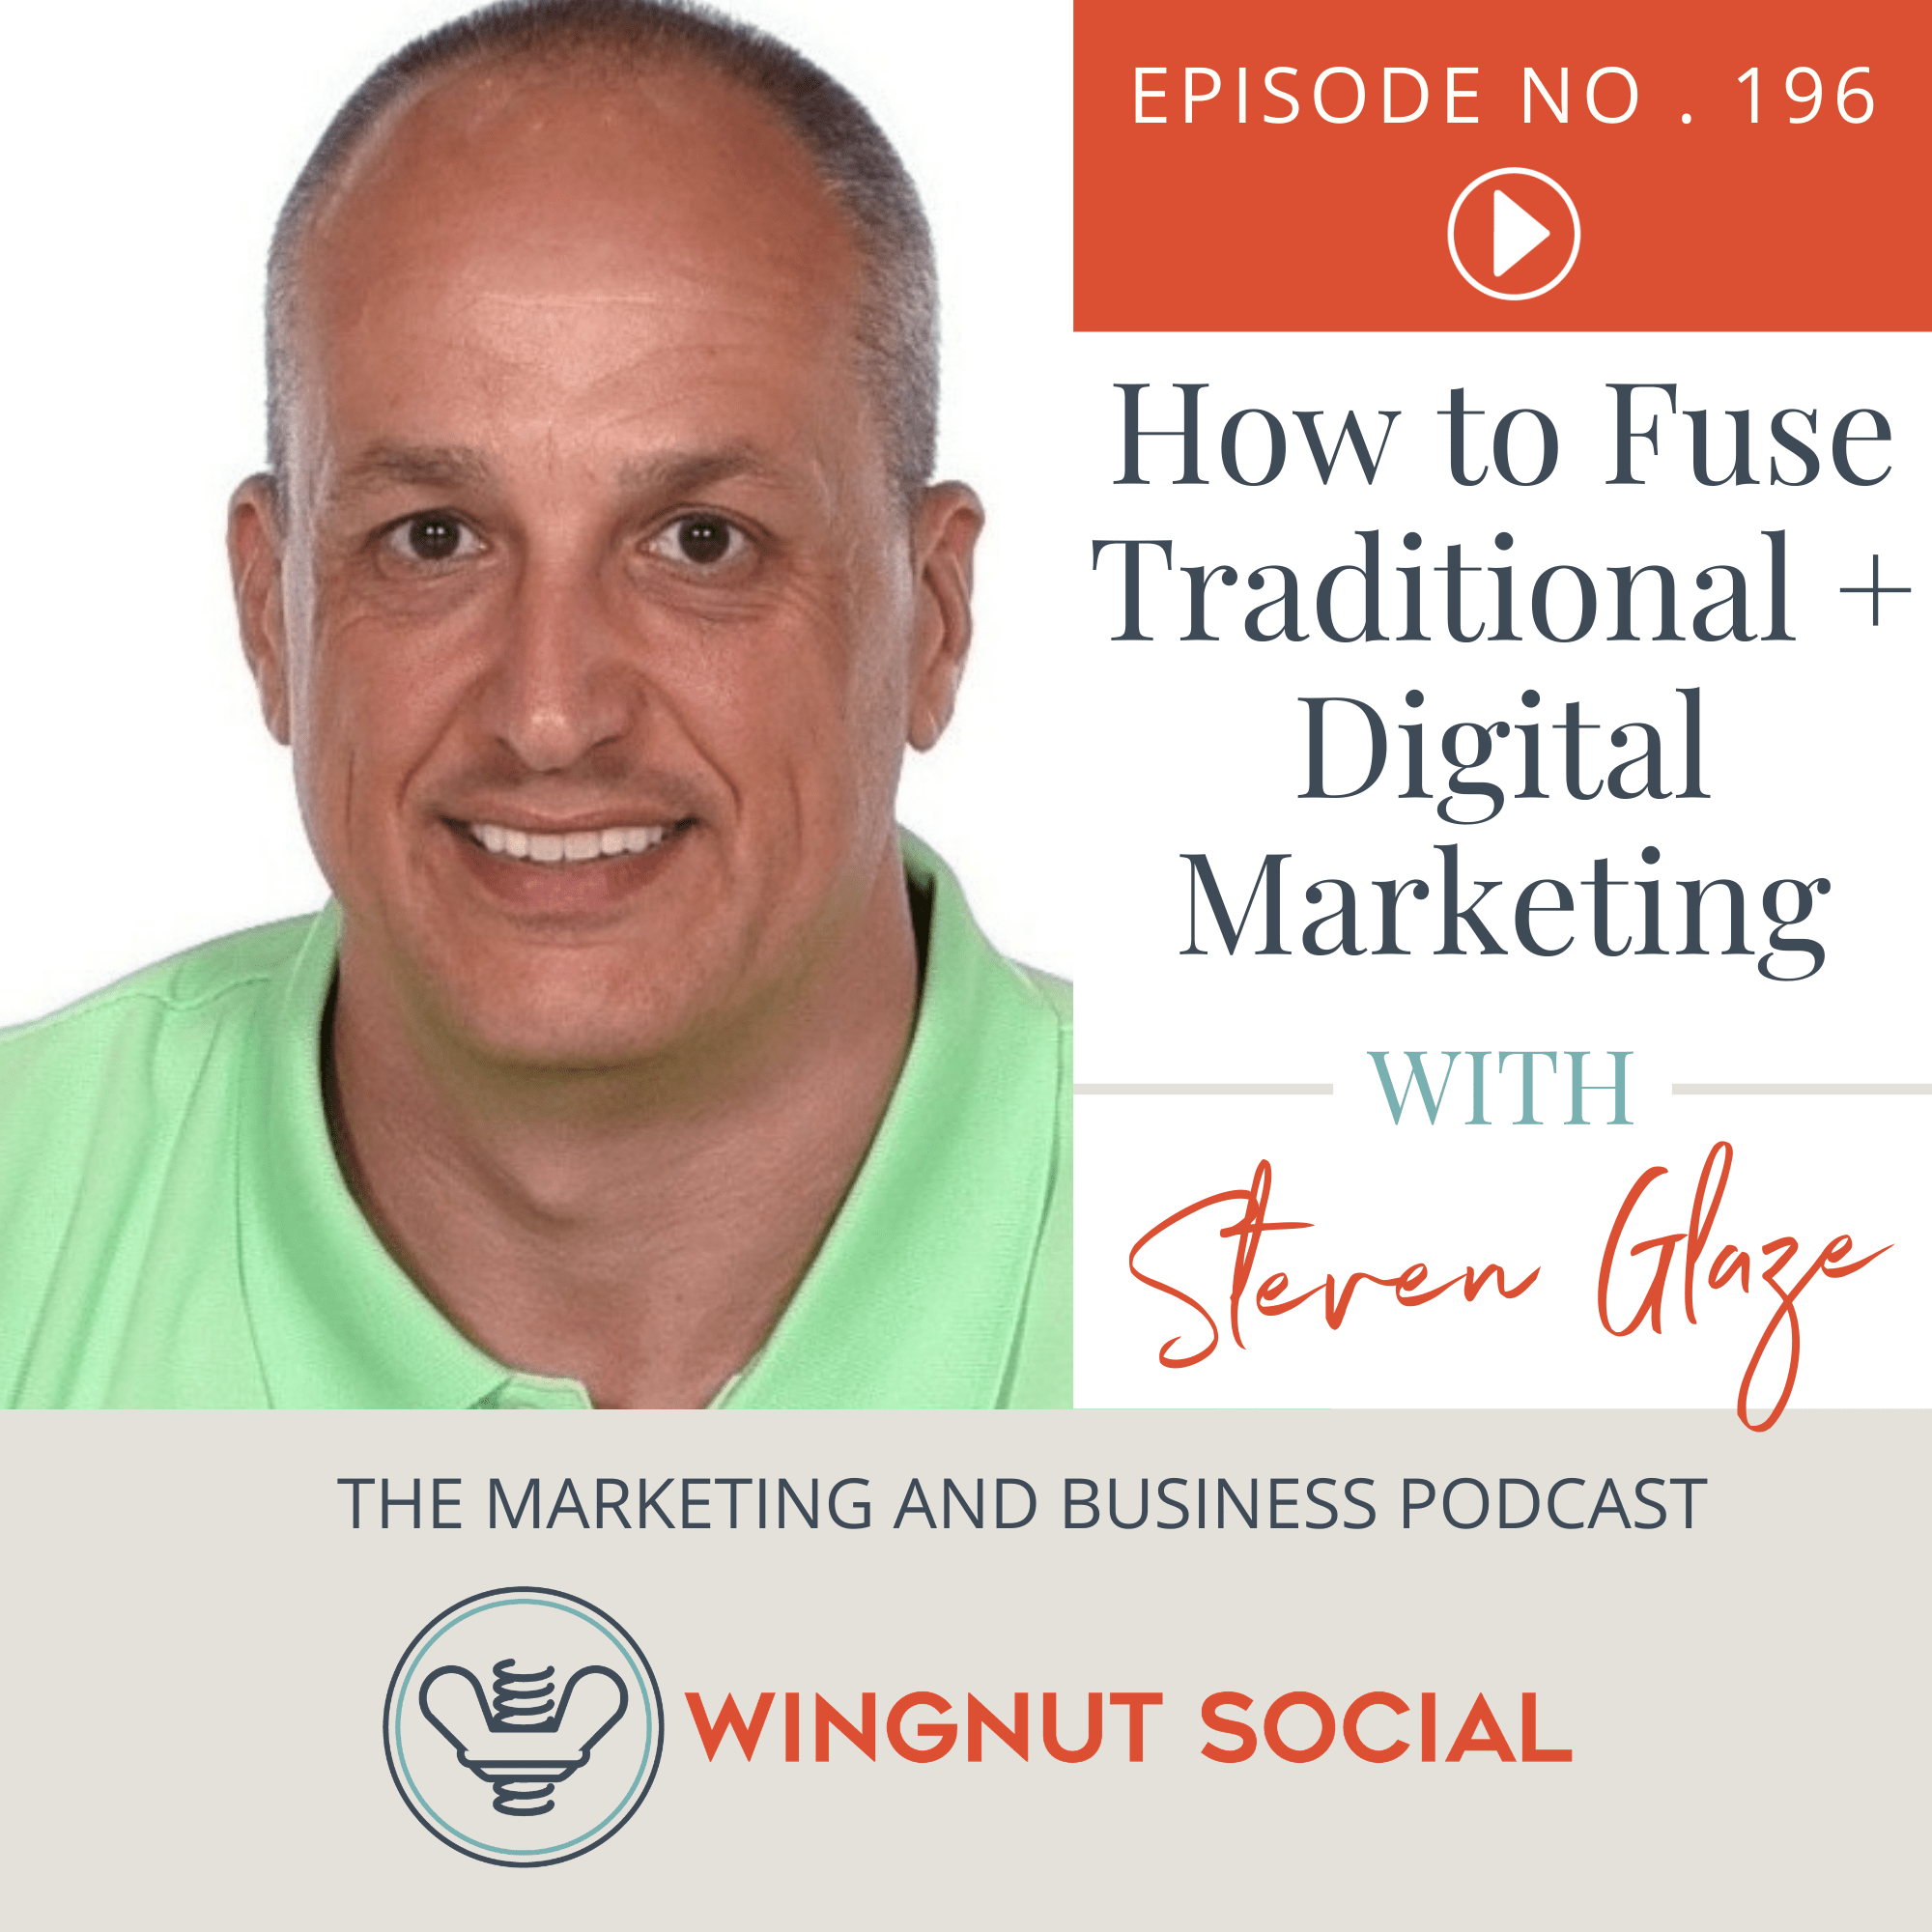 How to Fuse Traditional + Digital Marketing with Steven Glaze - Episode 196